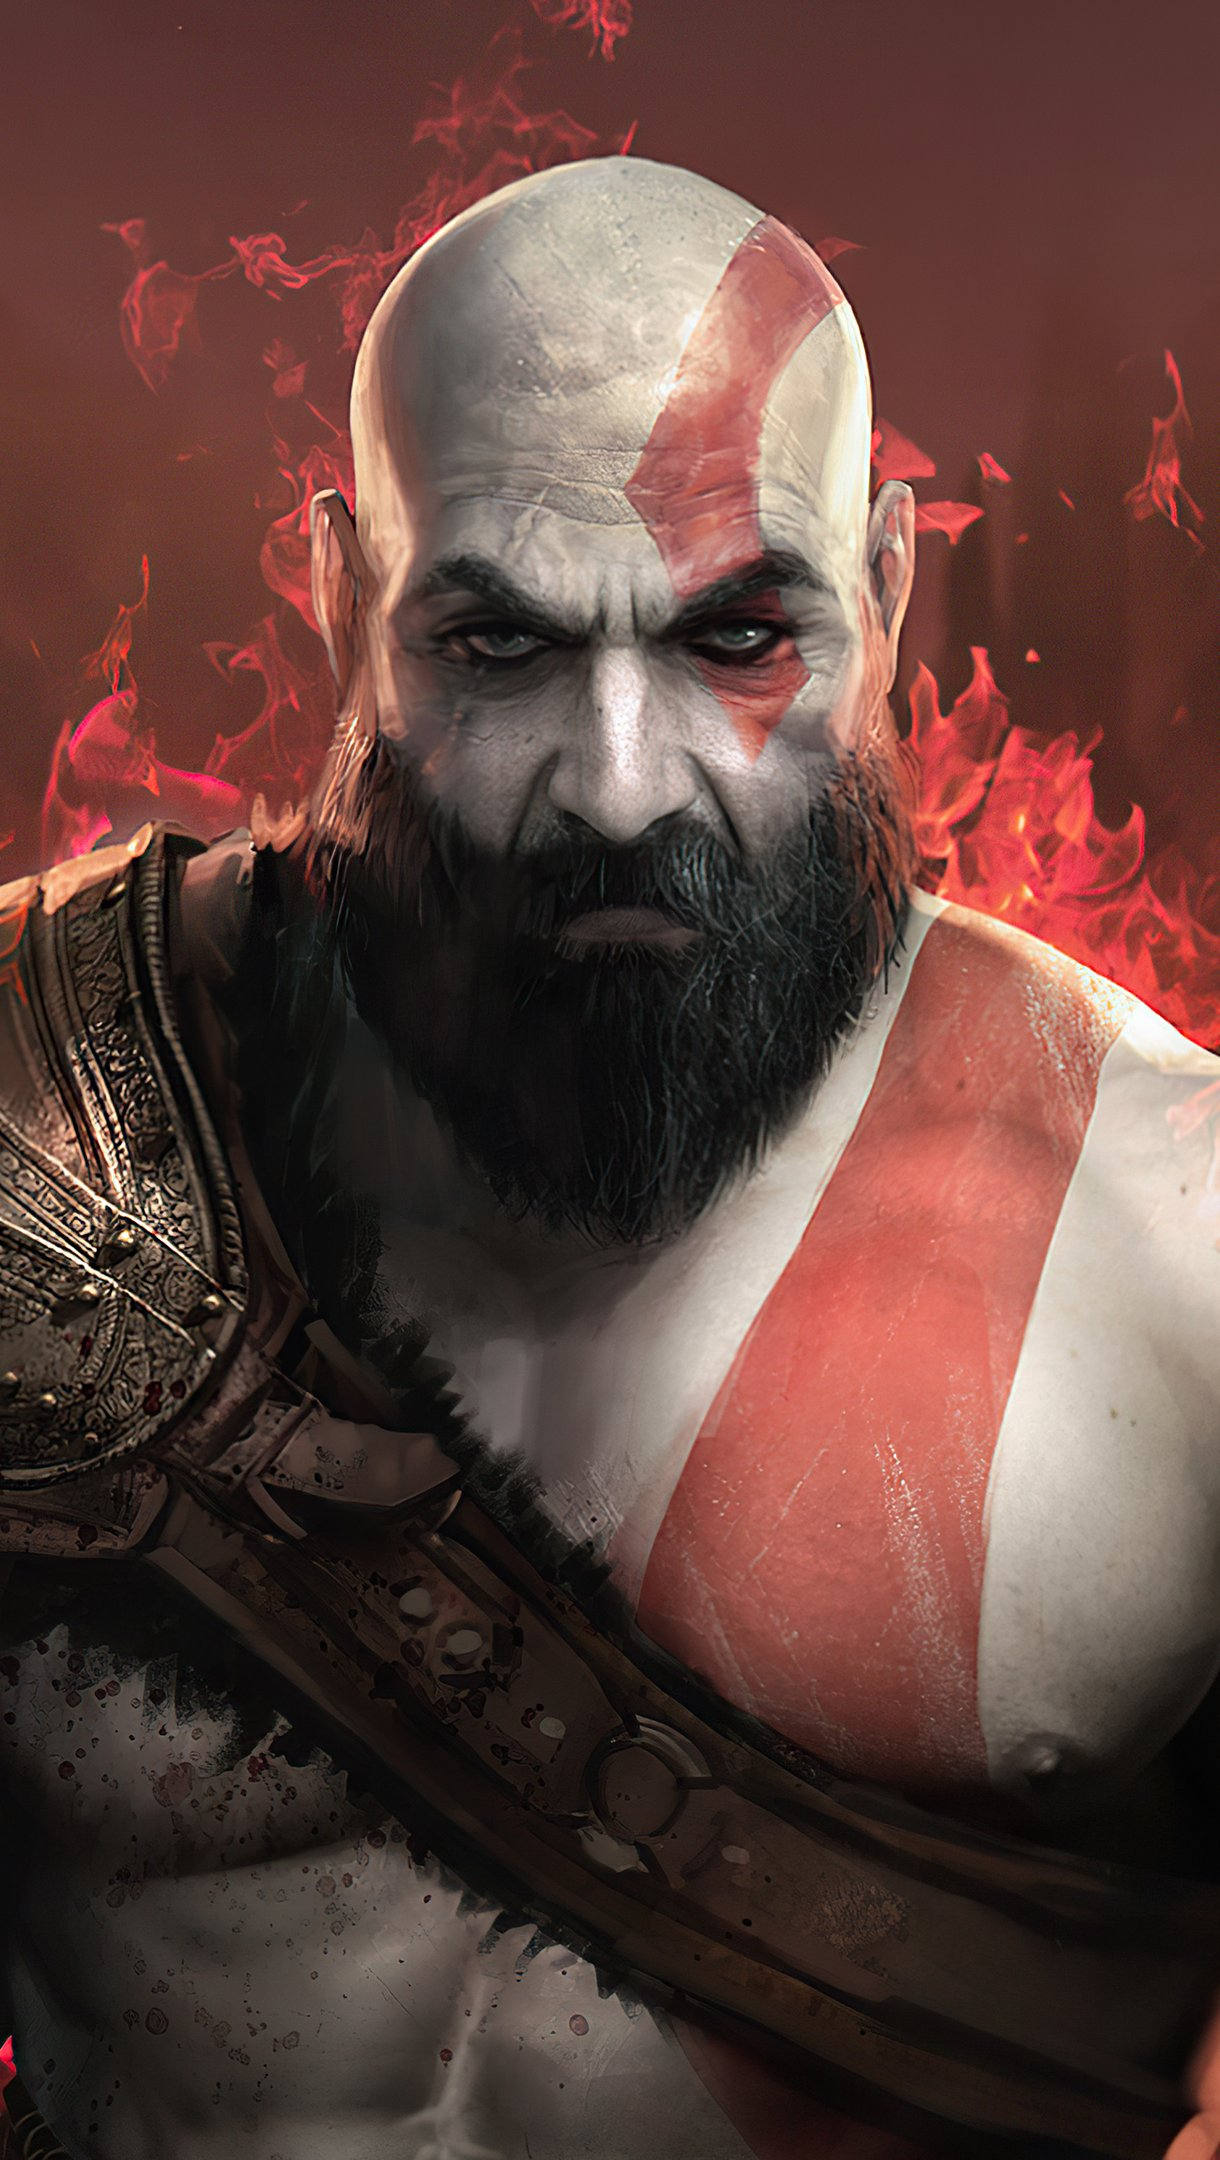 Fondos de pantalla Kratos de God of War 2020 Vertical